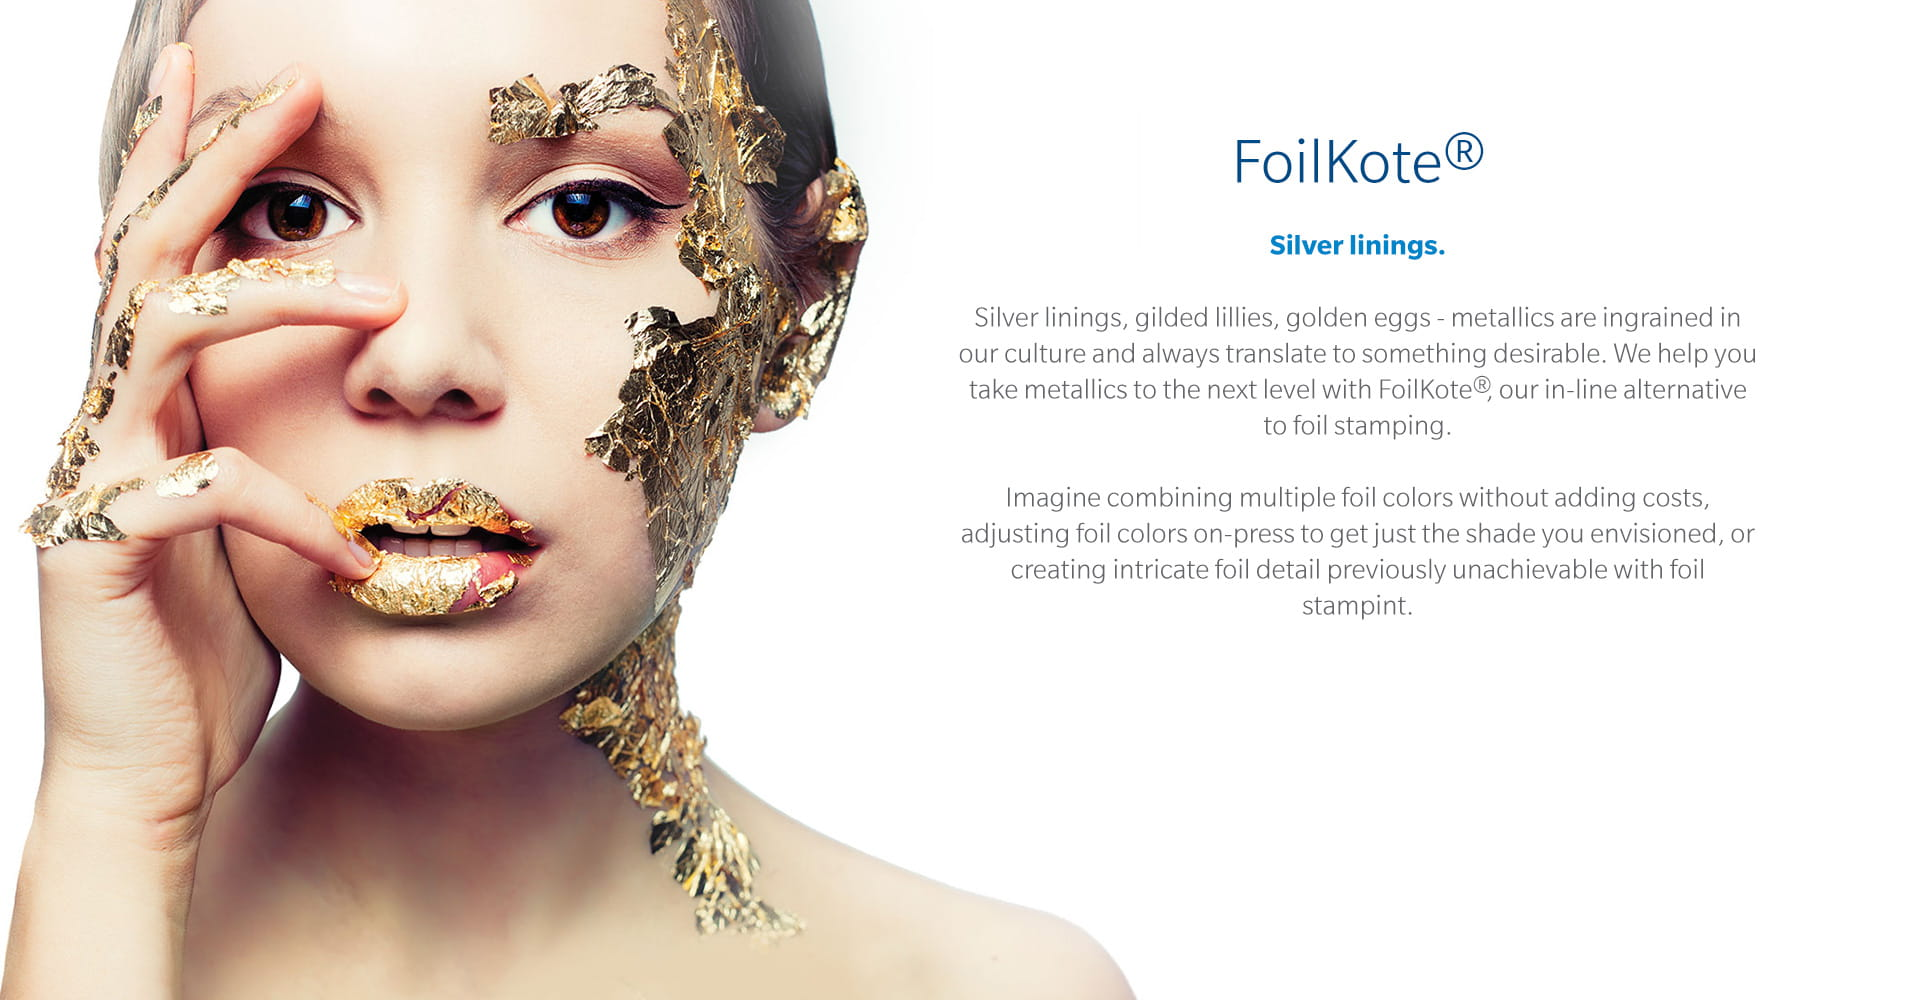 WestRock FoiKote metallic accenting